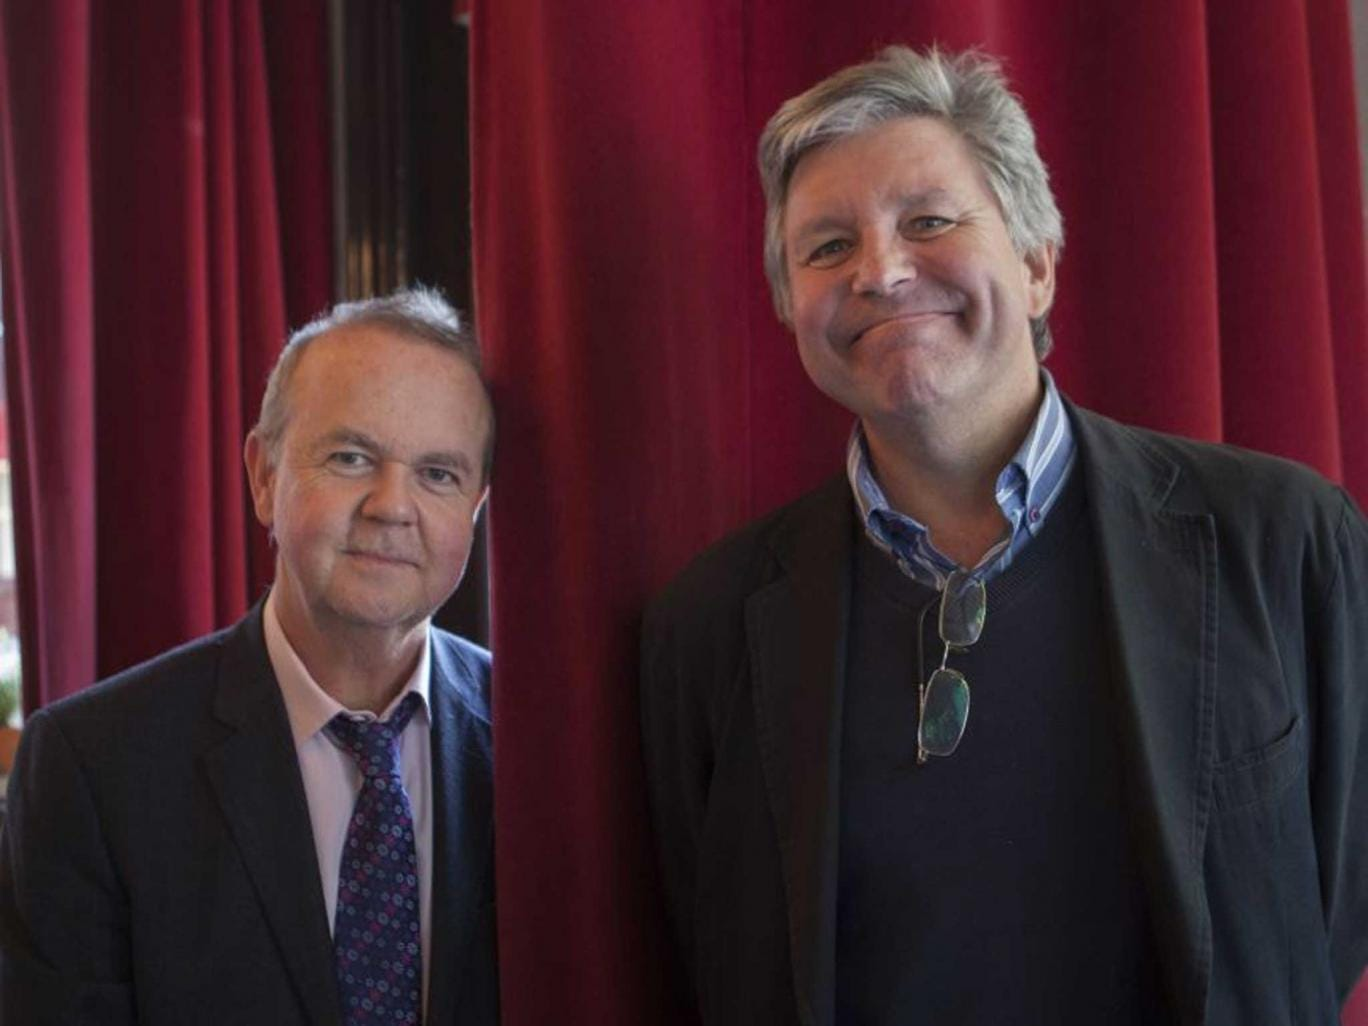 Writers' TImes: Co-authors Hislop and Newman